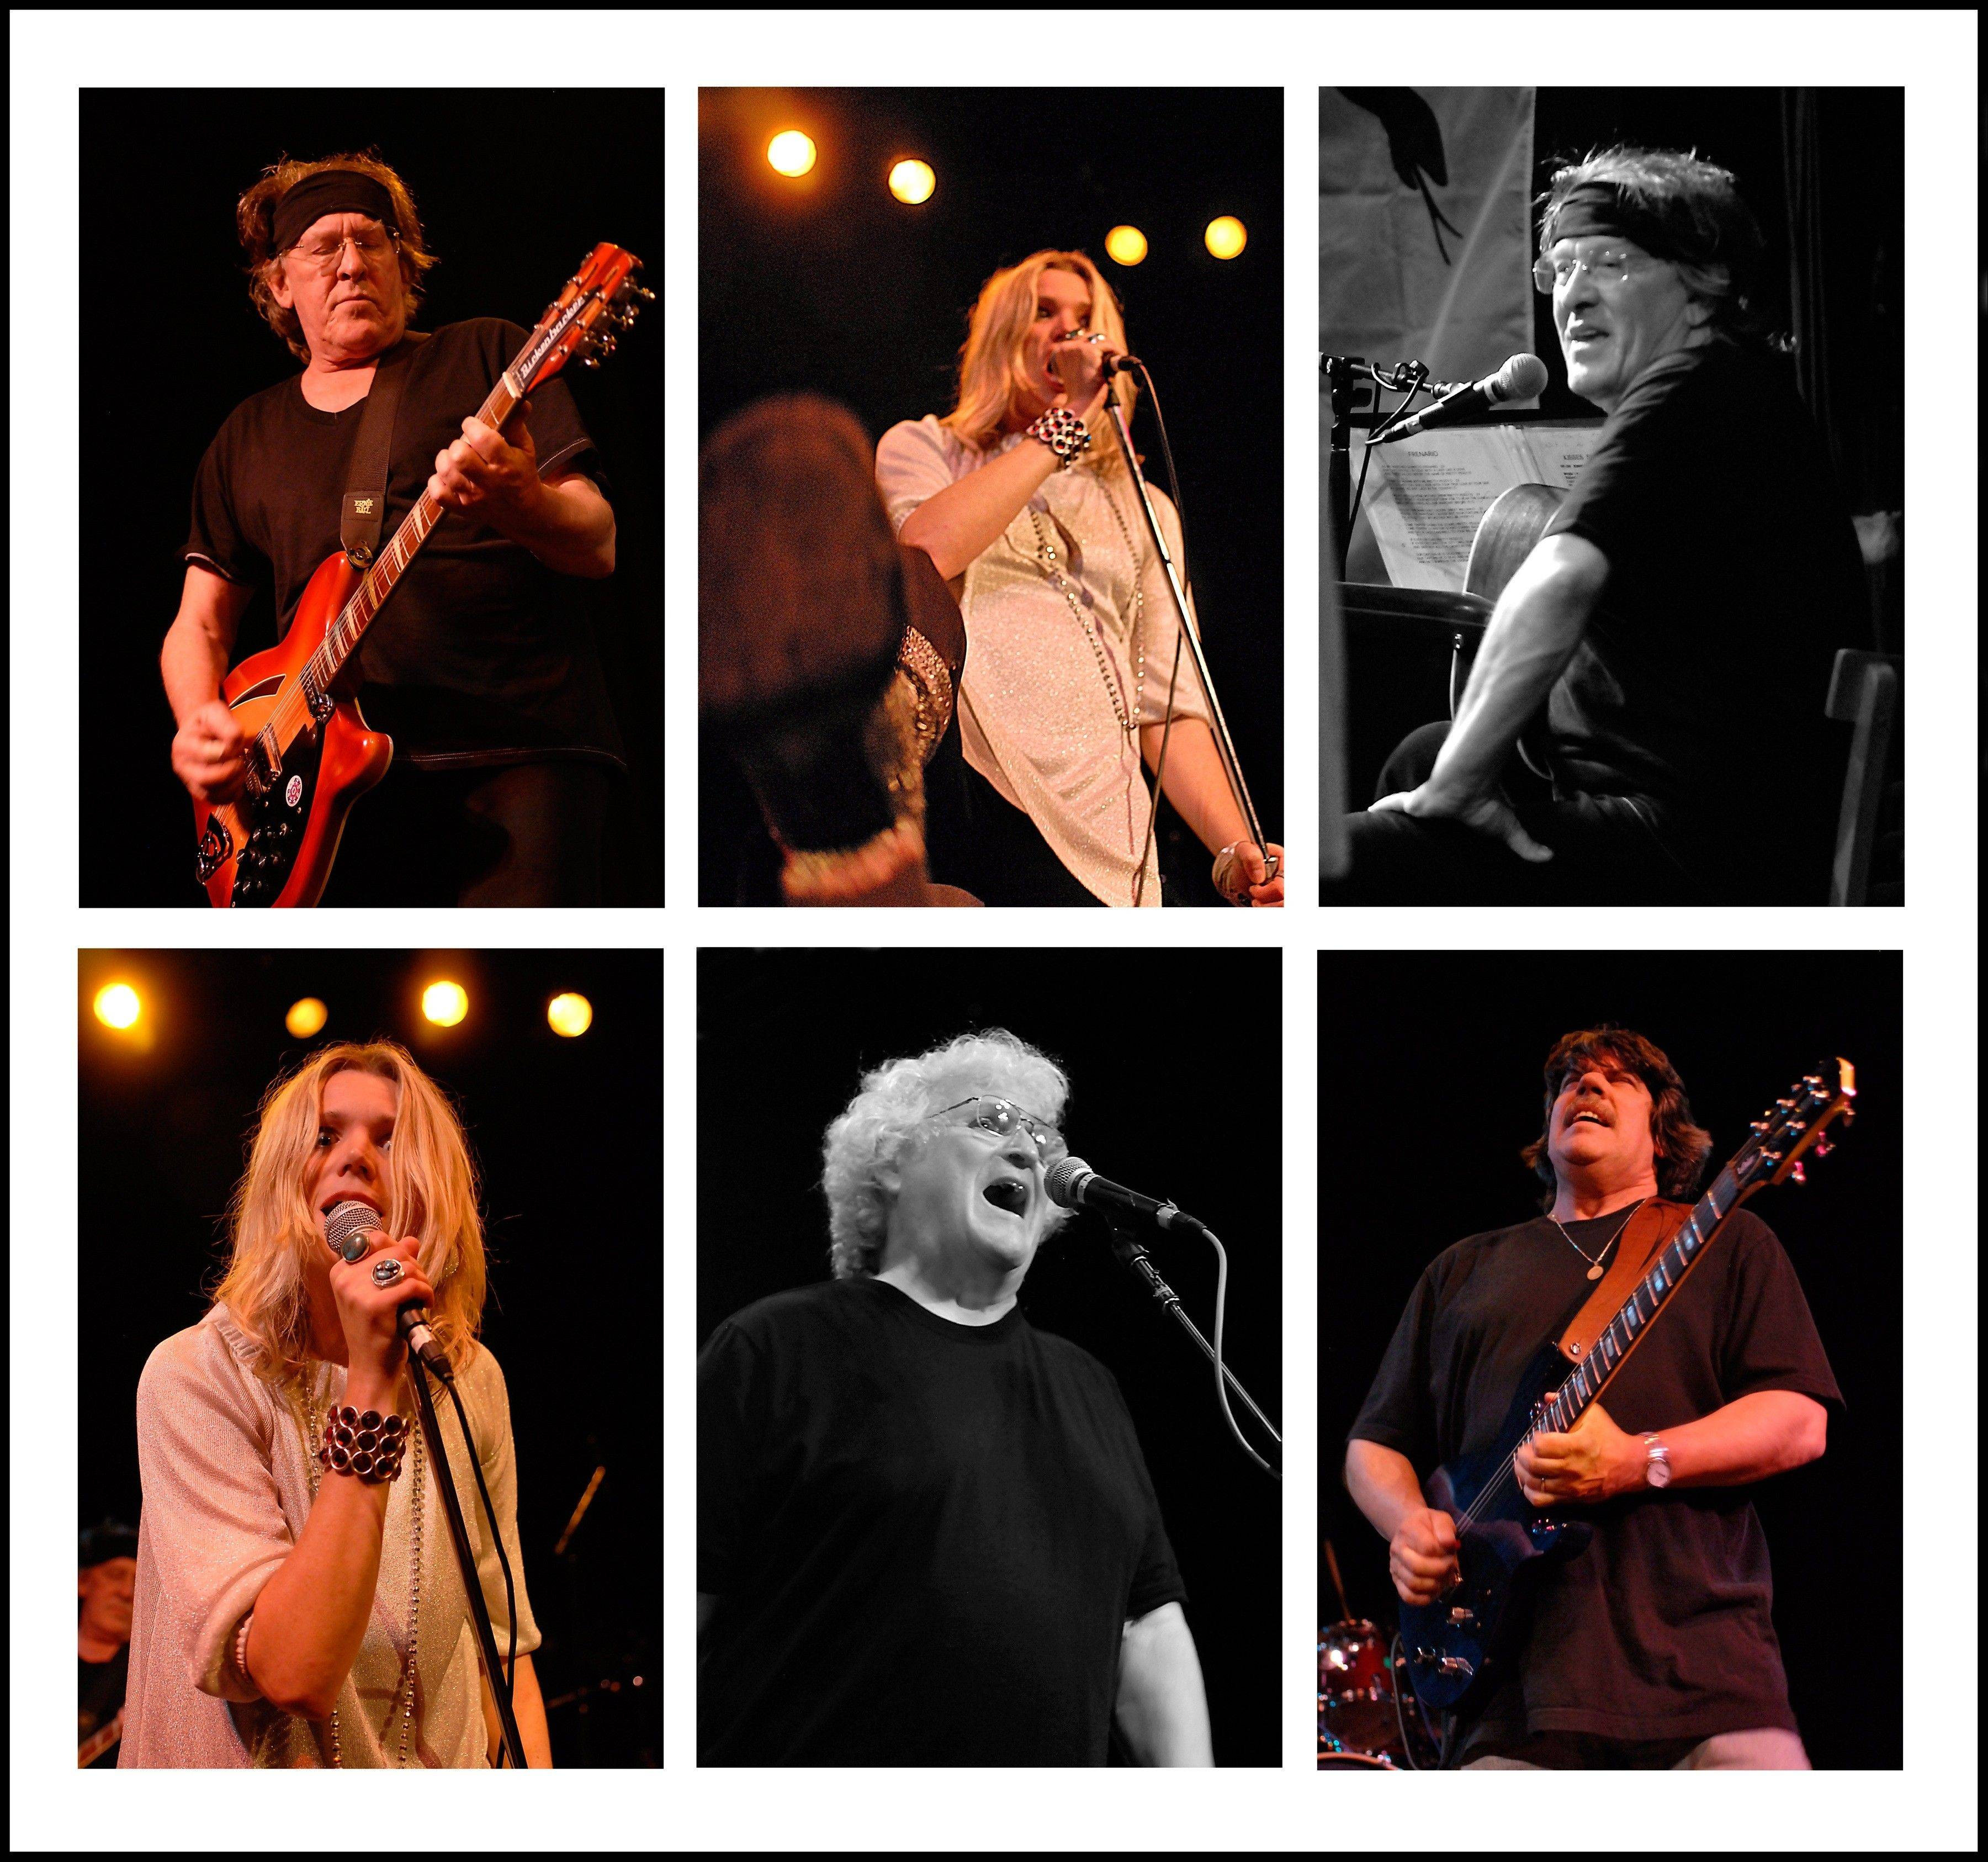 Jefferson Starship will perform Friday, Sept. 14, at the Metropolis Performing Arts Centre in Arlington Heights.